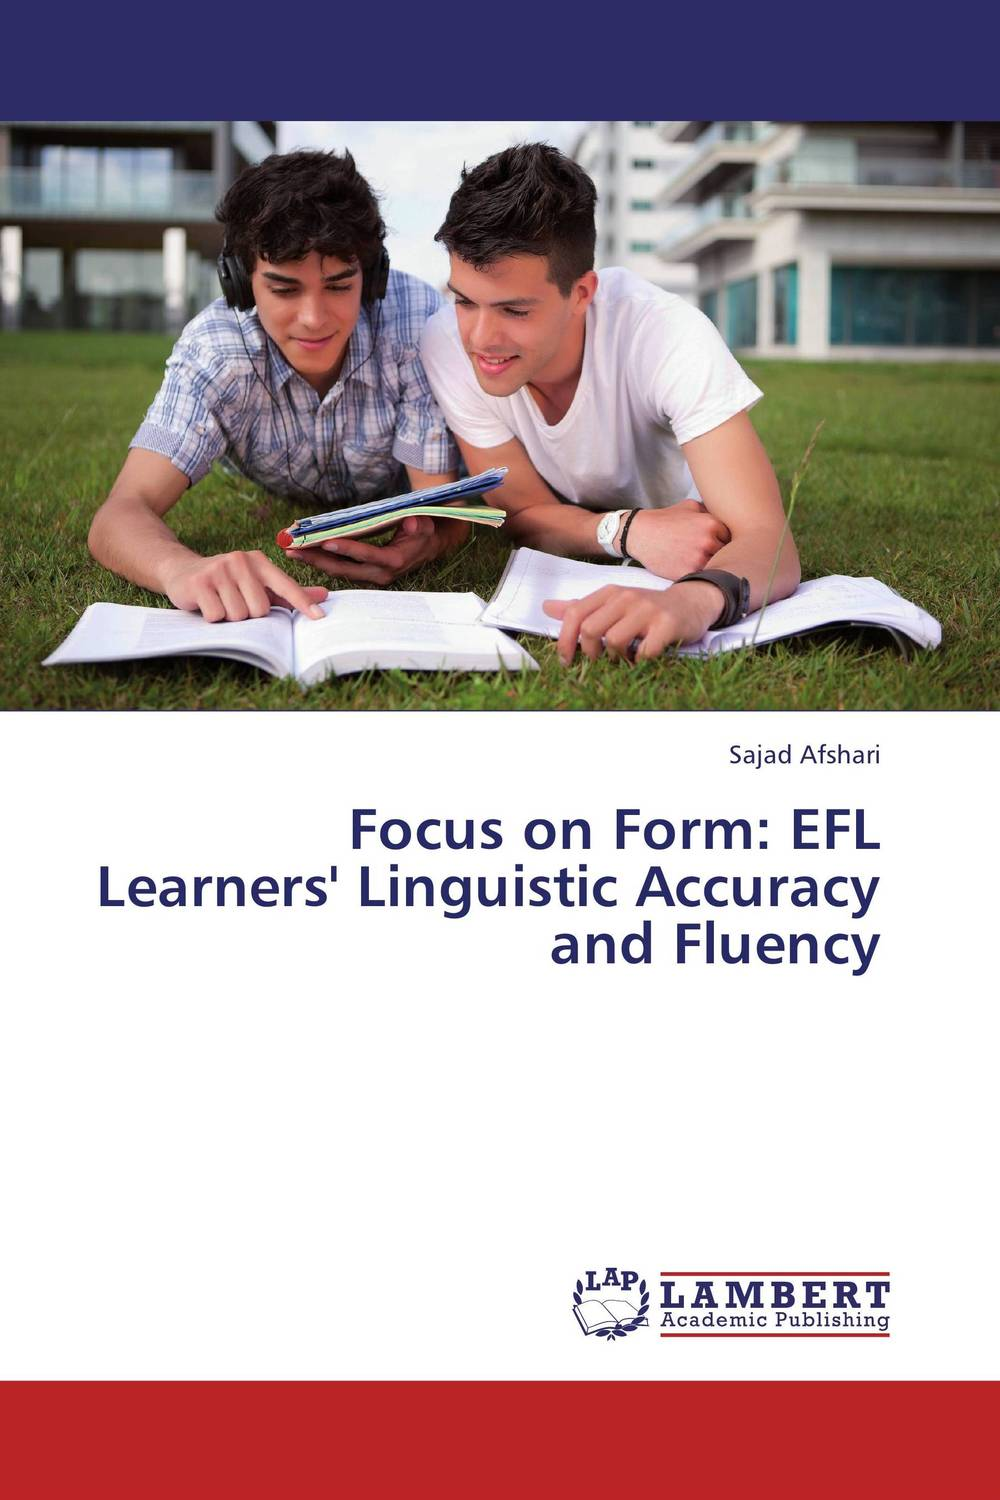 Focus on Form: EFL Learners' Linguistic Accuracy and Fluency a study on english language proficiency of efl learners in bangladesh